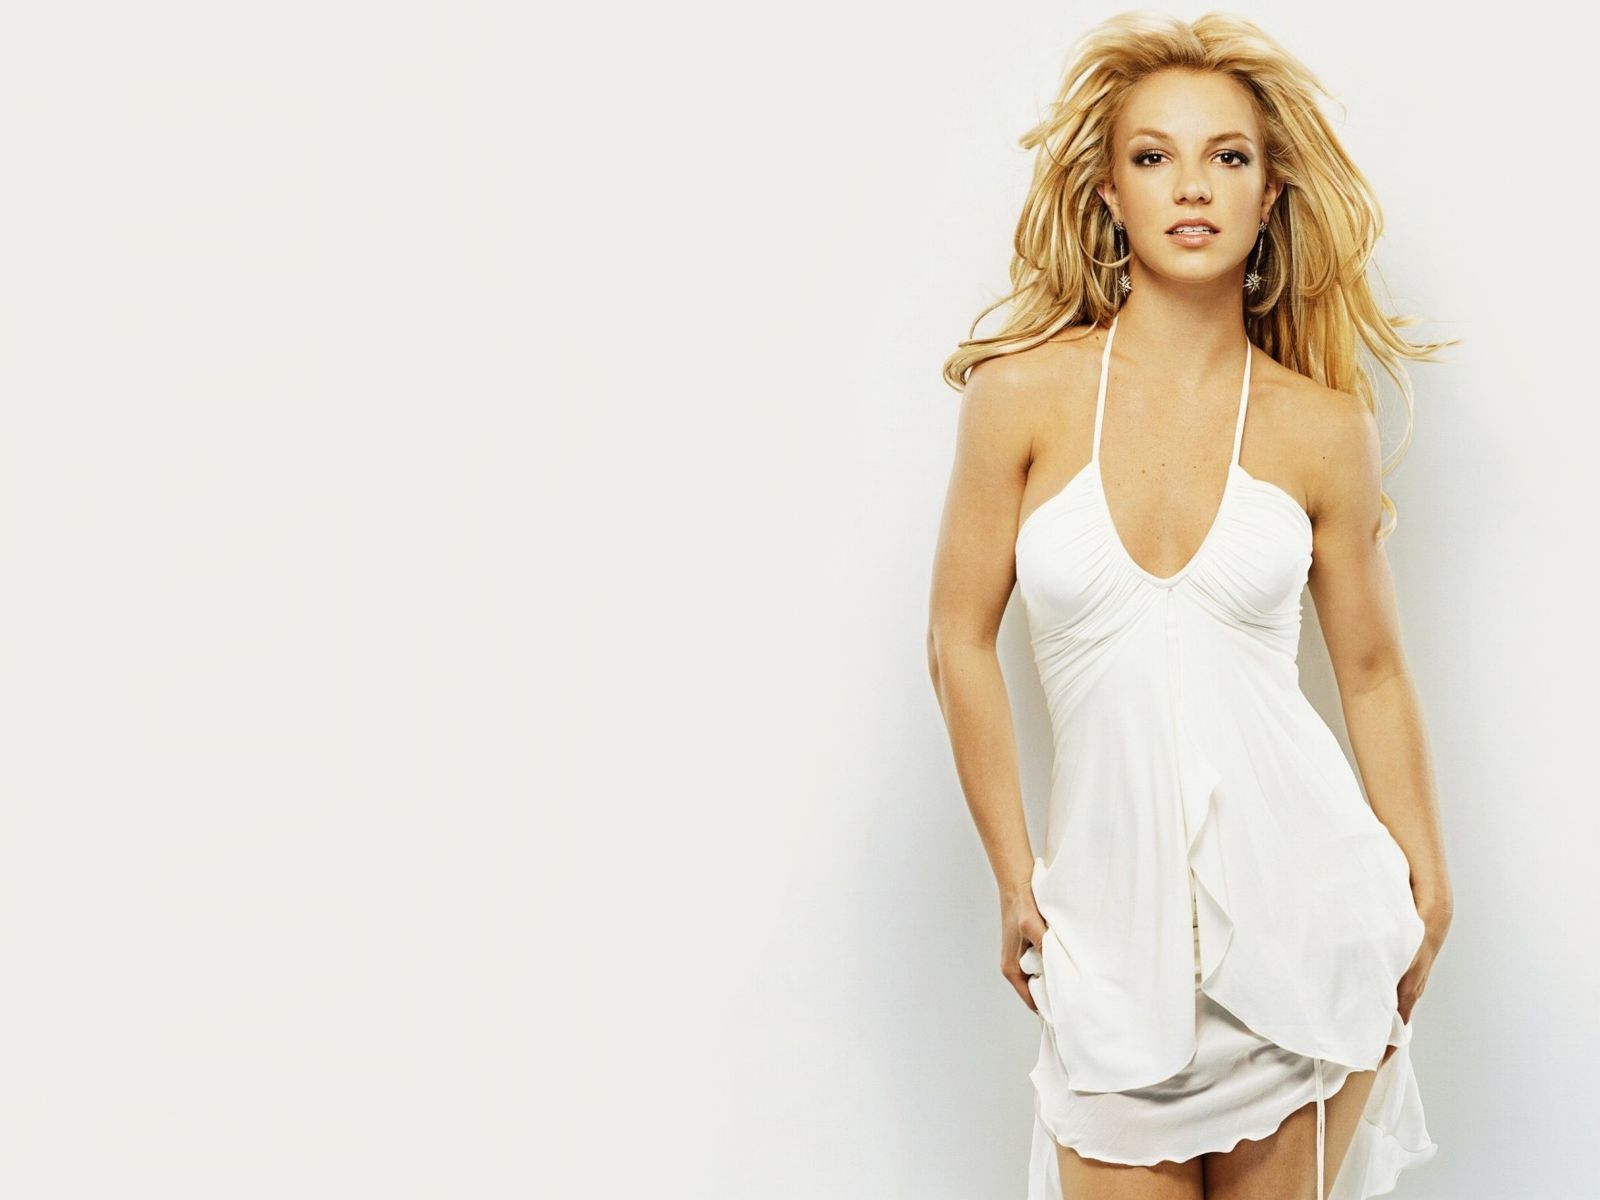 Beautiful Britney wallpaper